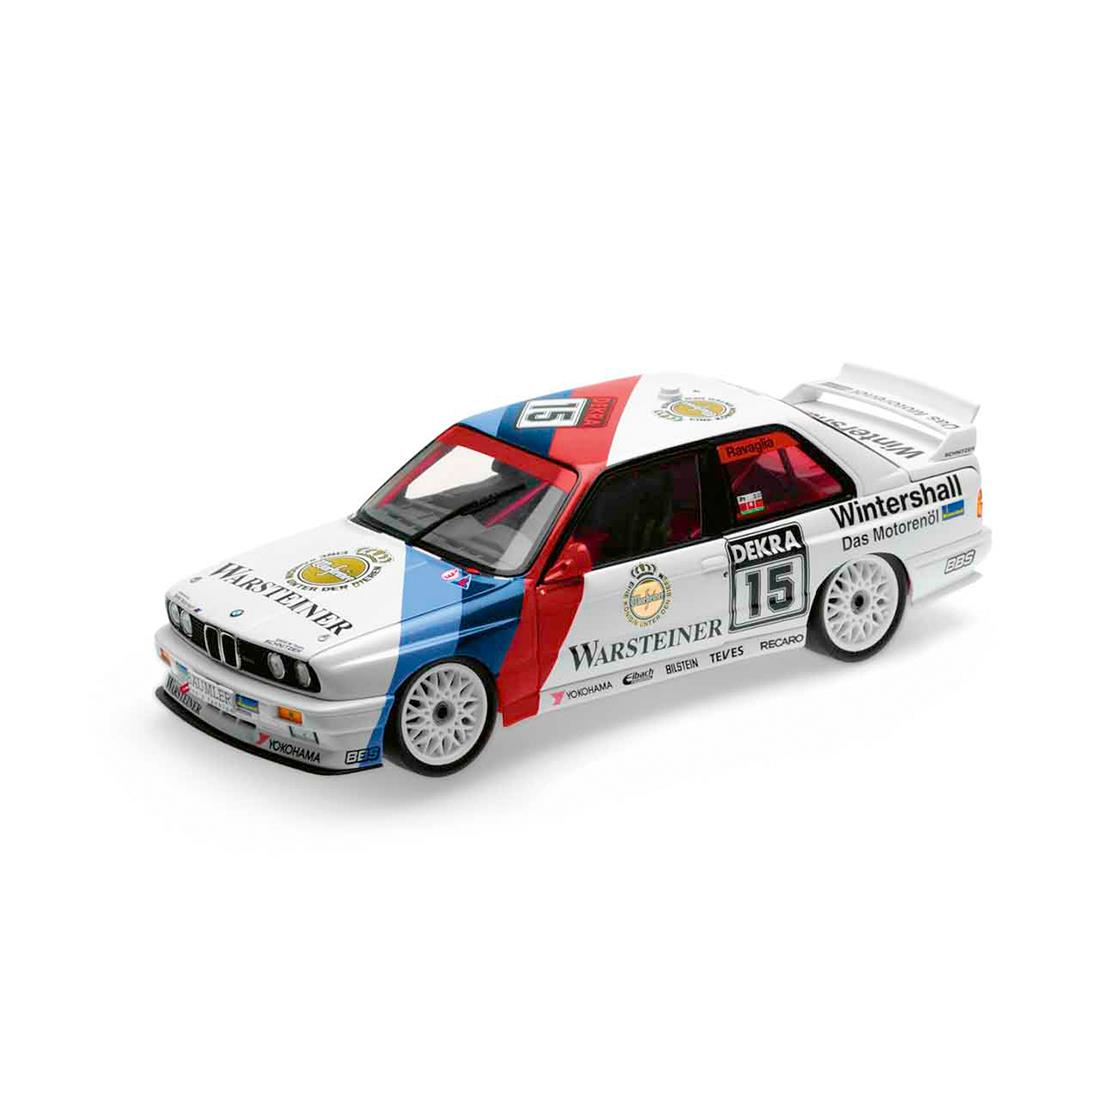 BMW MINIATURE BMW M3, R.RAVAGLIA, HERITAGE RACING MOTORSPORT 1:18